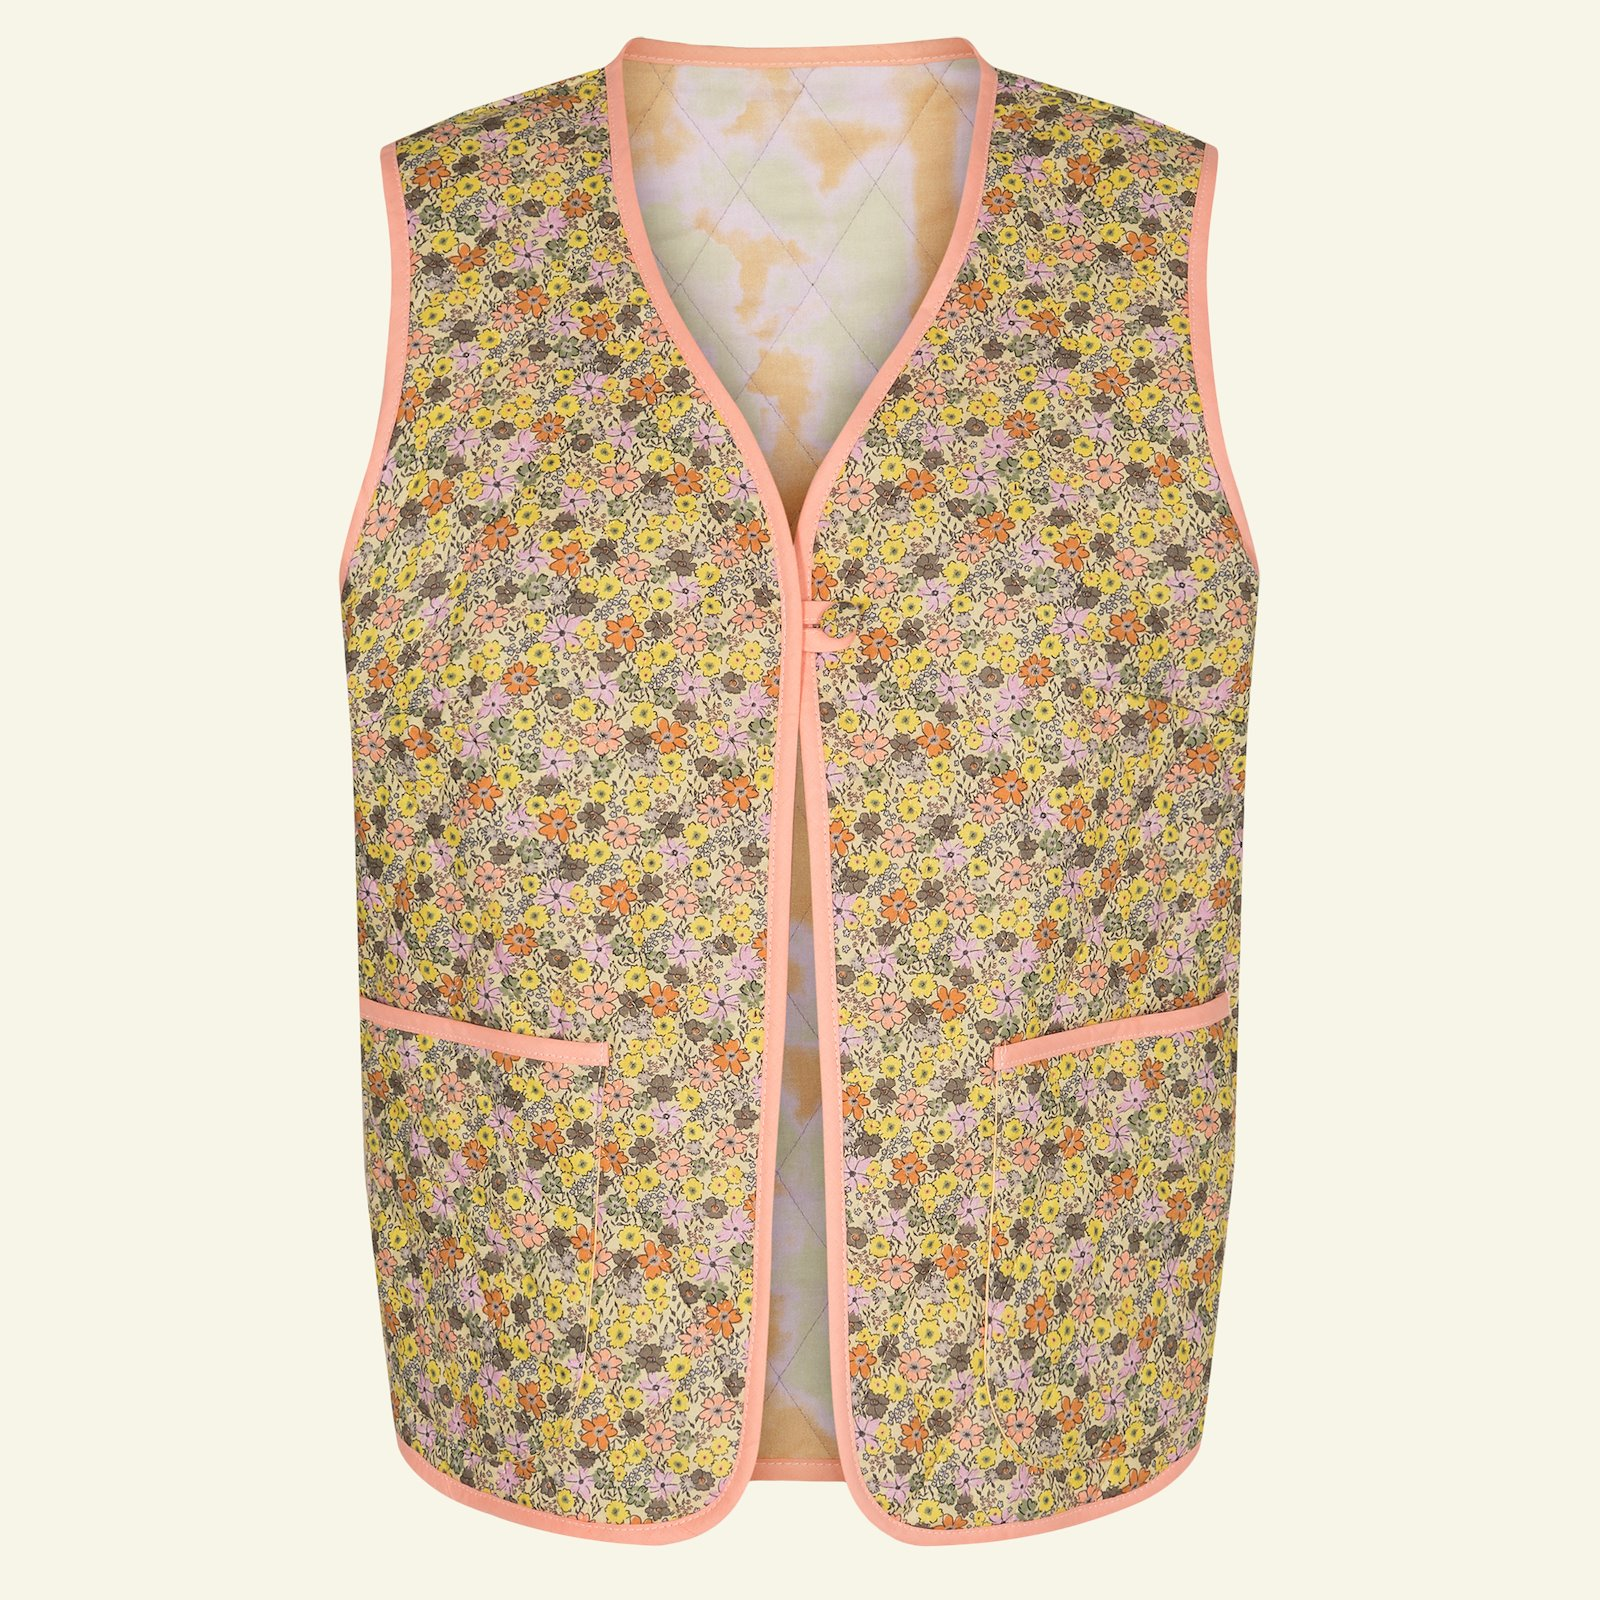 Quilted jacket and waistcoat p24047_920228_4295_66007_43507_sskit